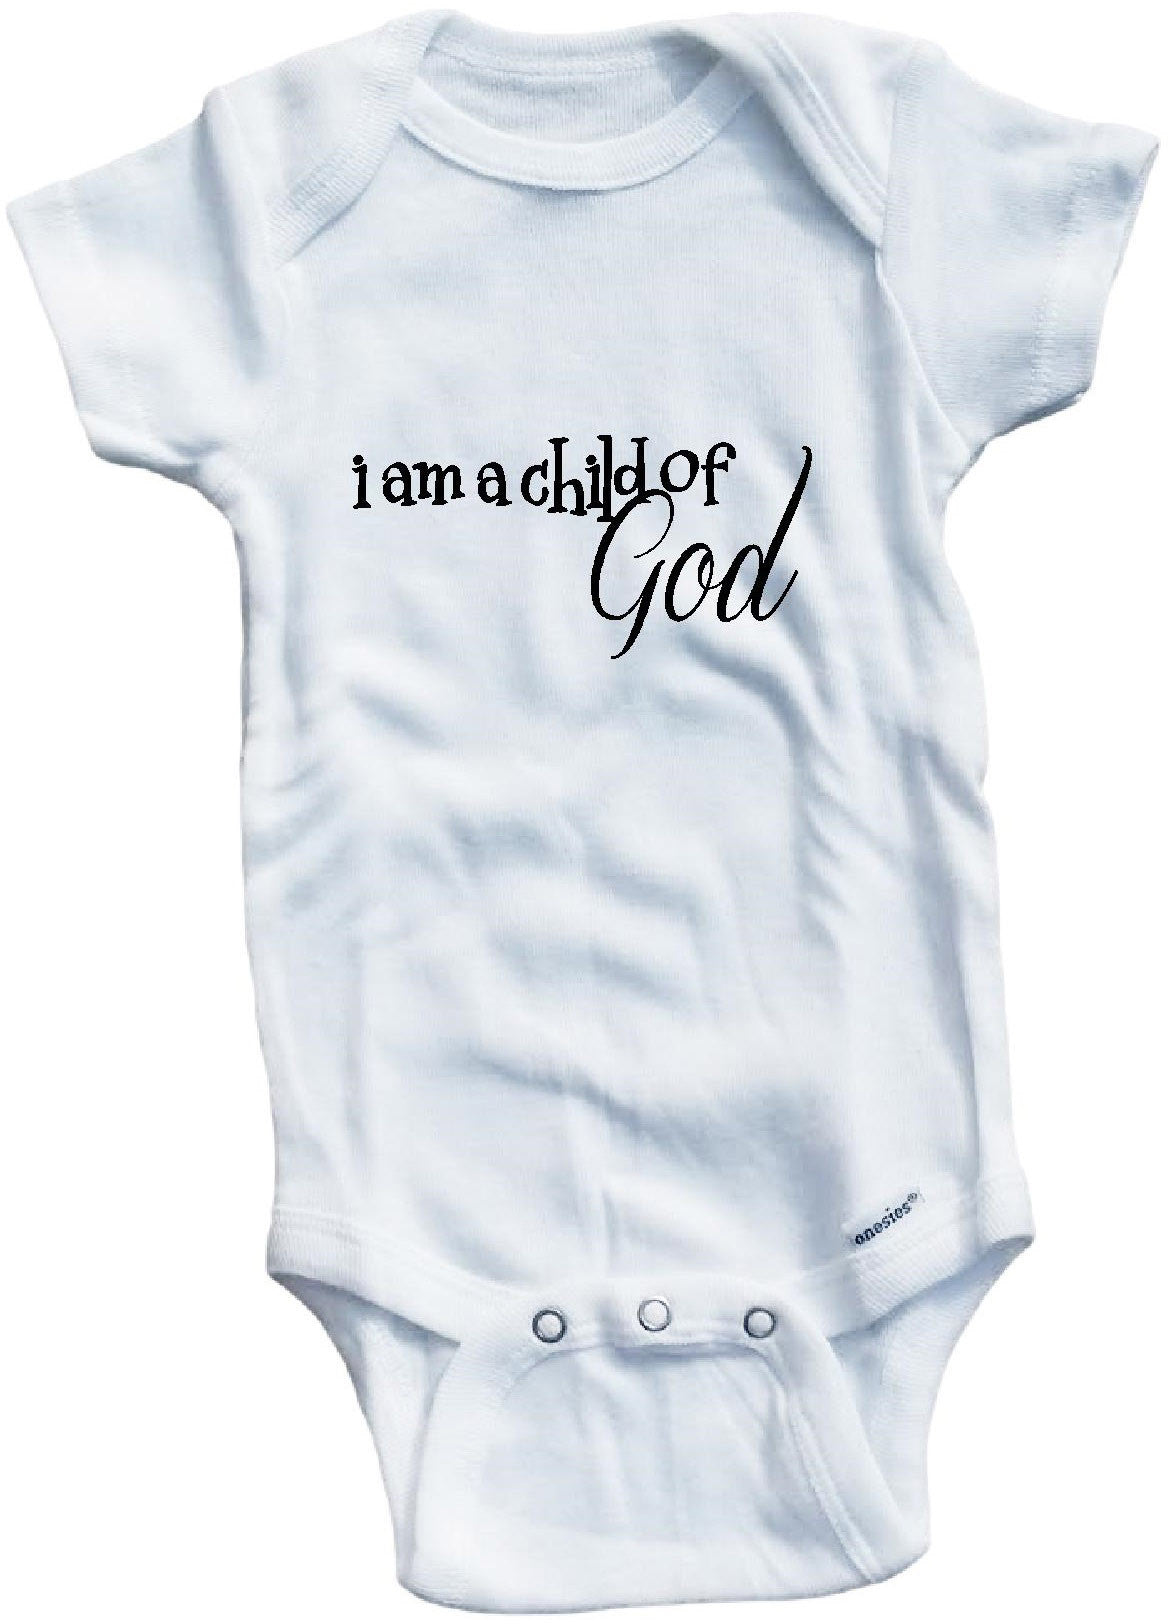 7974be732409 I am a child of God religious cute infant clothing funny baby ...